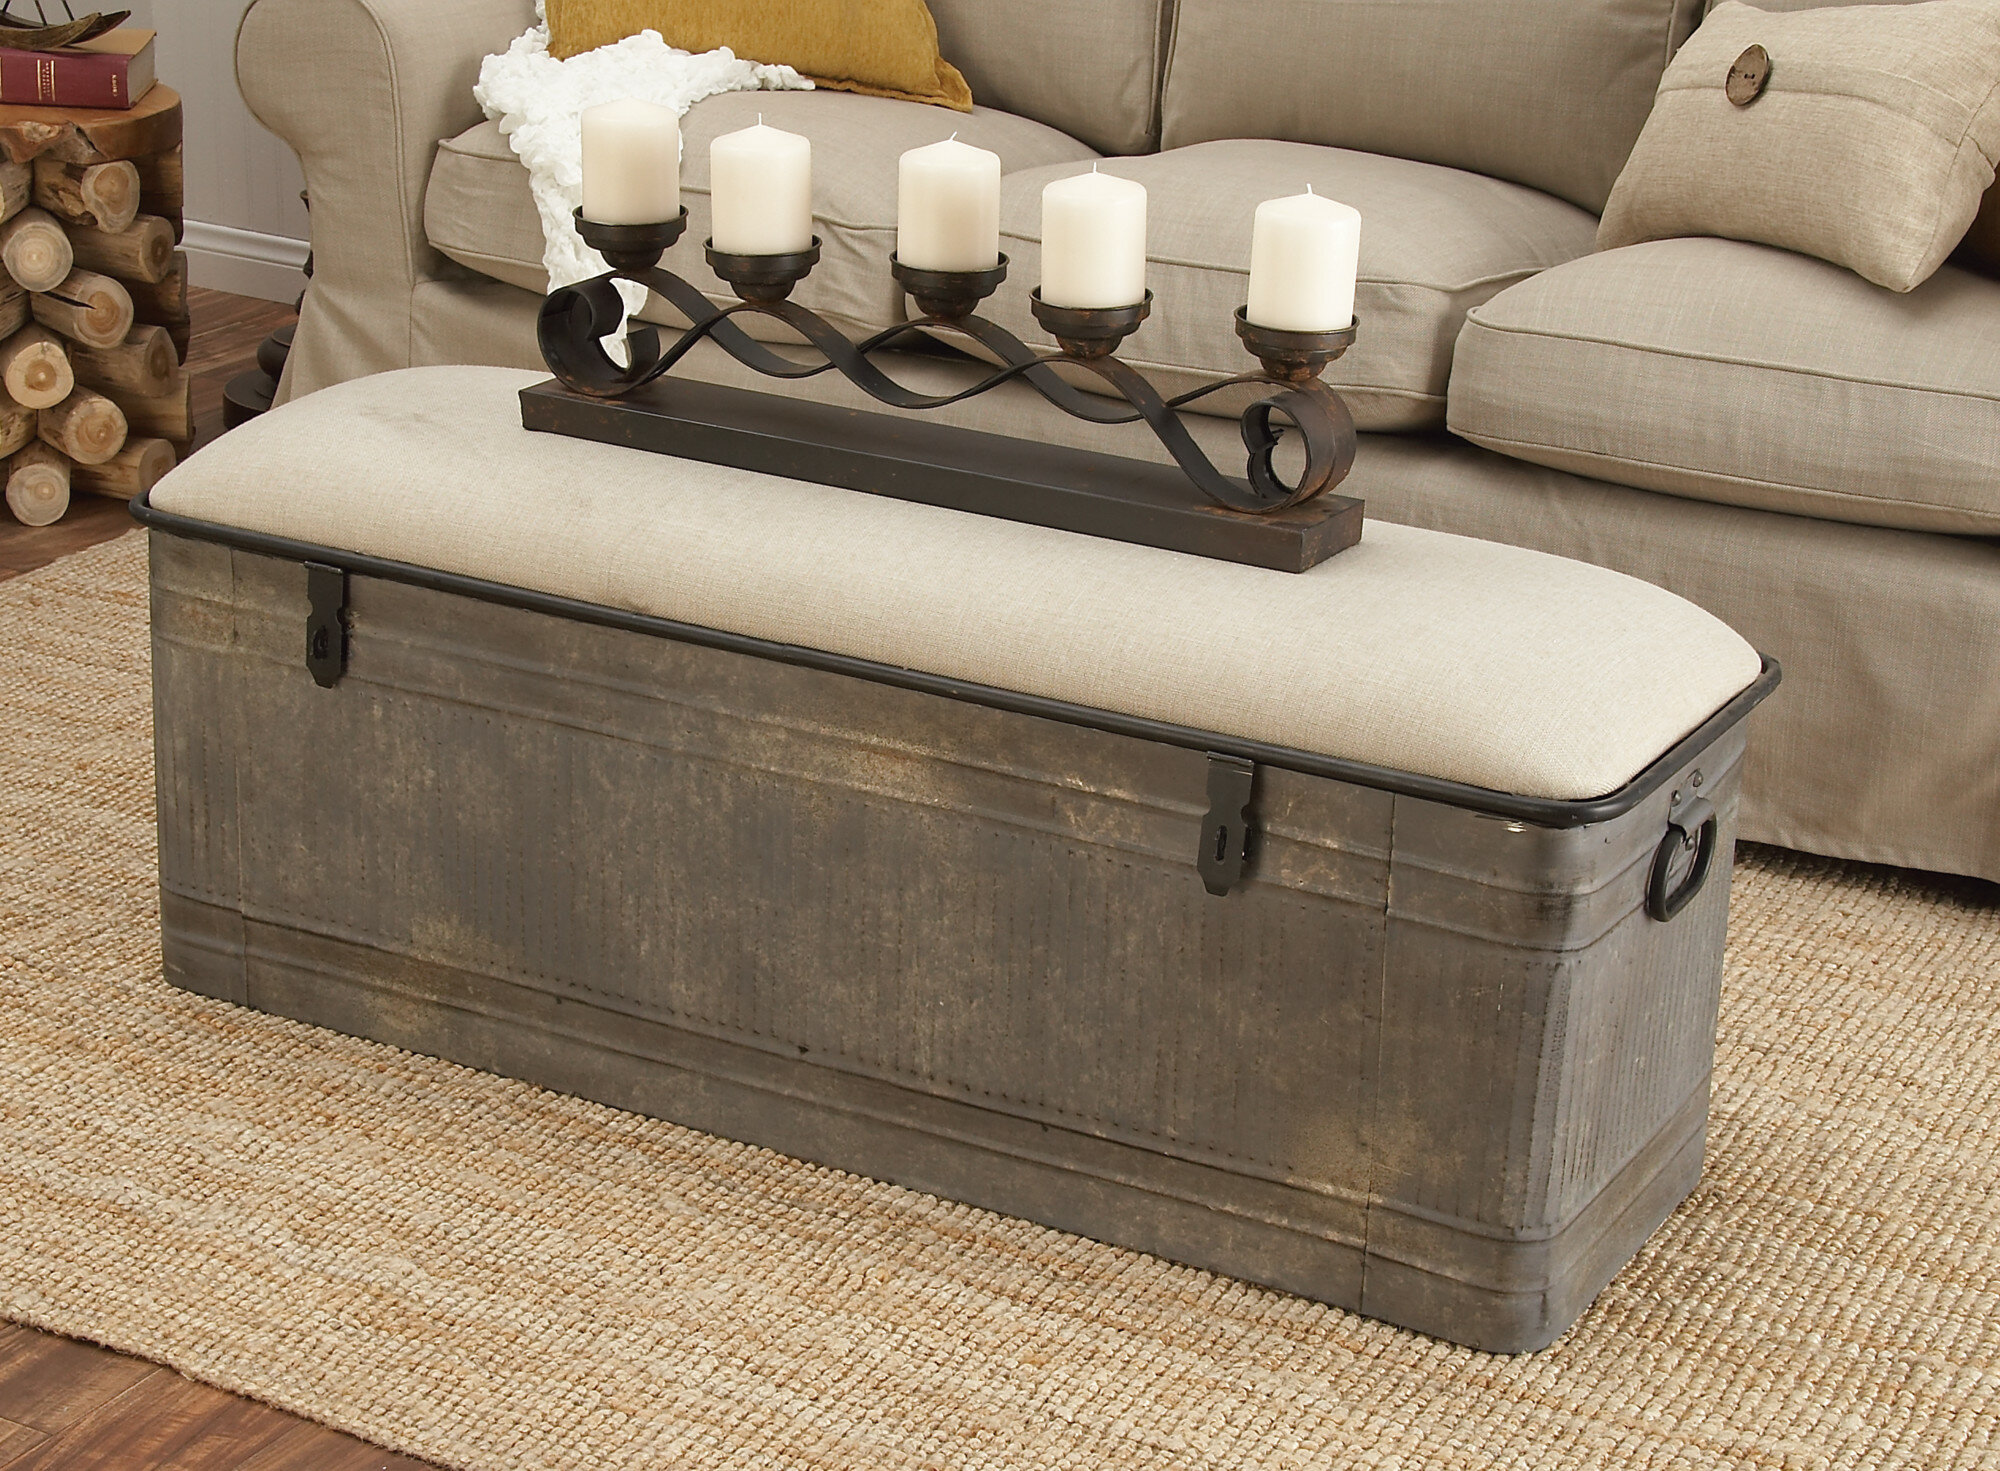 Outstanding Dublin Upholstered Storage Bench Creativecarmelina Interior Chair Design Creativecarmelinacom